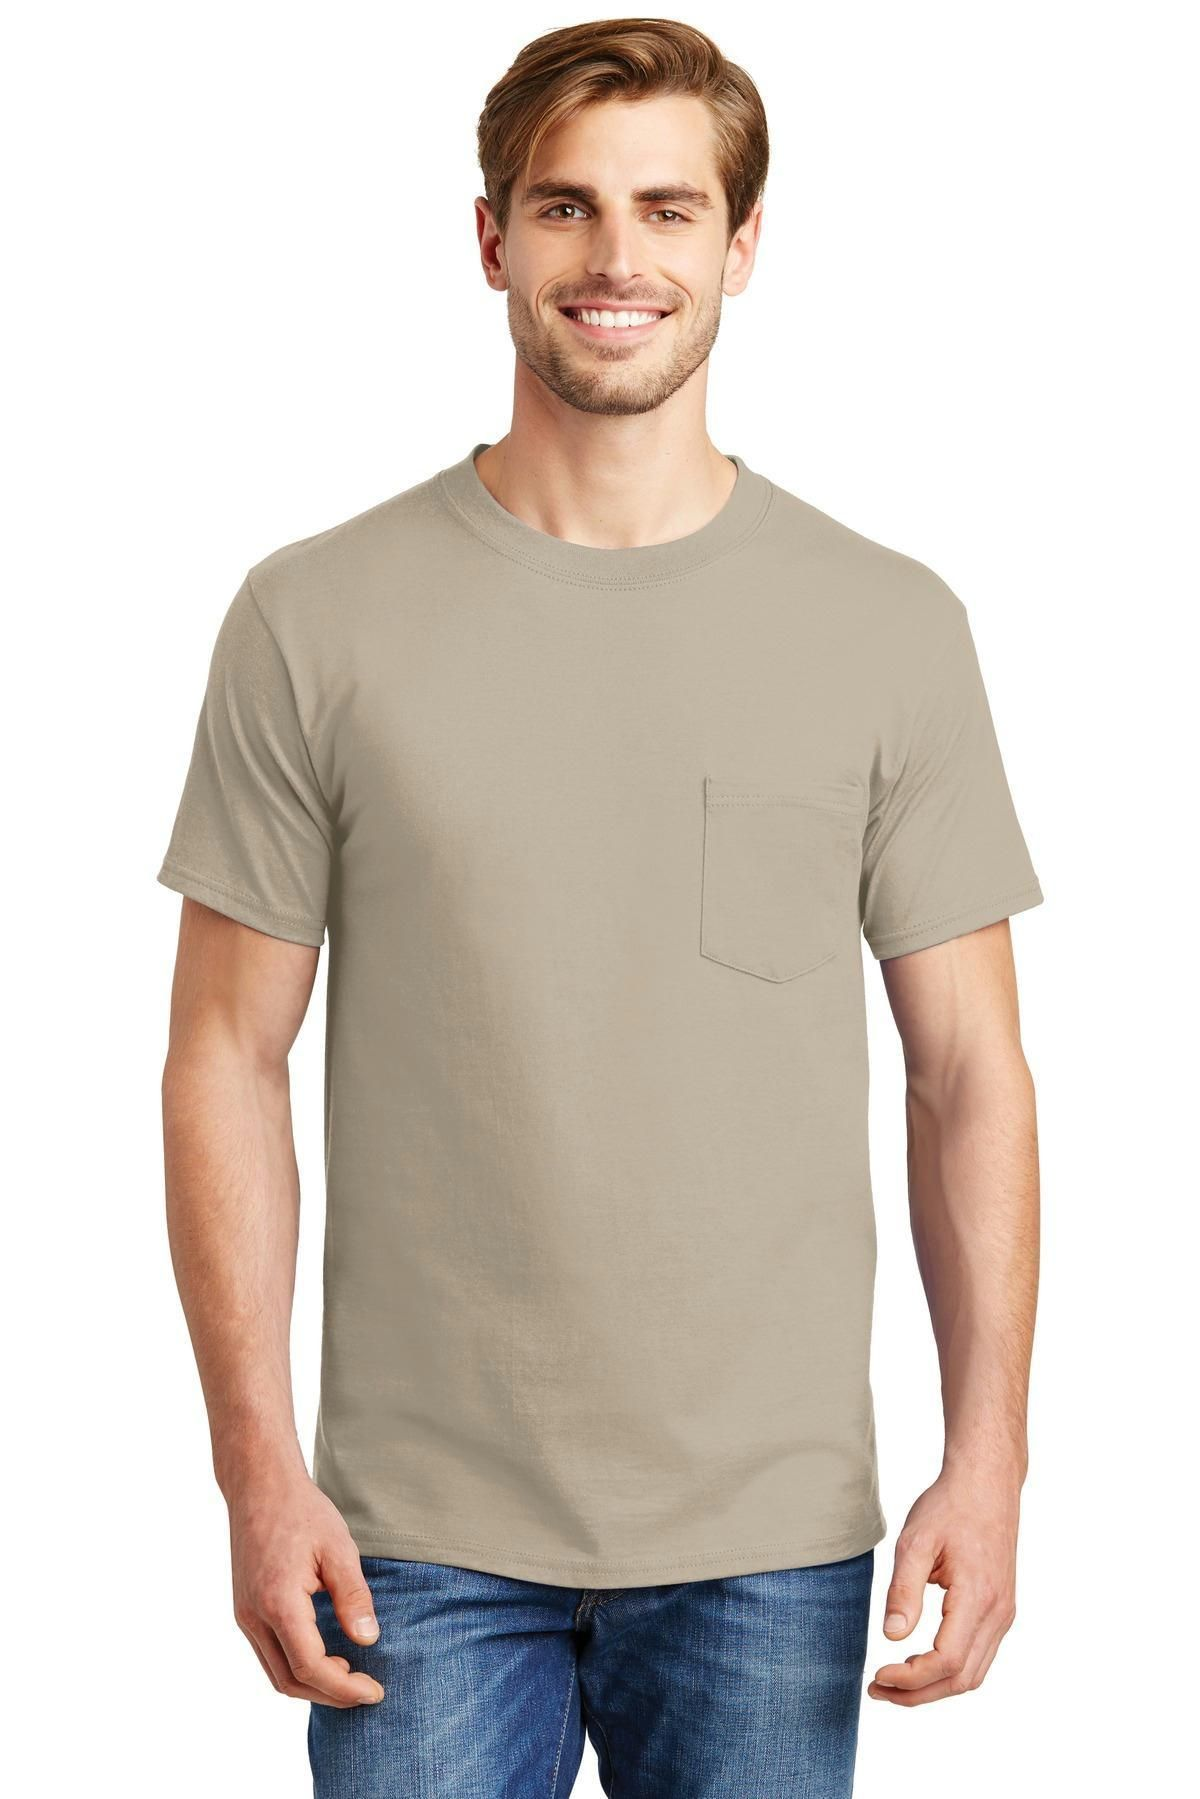 3b82b4f749d1d6 Hanes Beefy-T - 100% Cotton T-Shirt with Pocket 5190 | Products ...